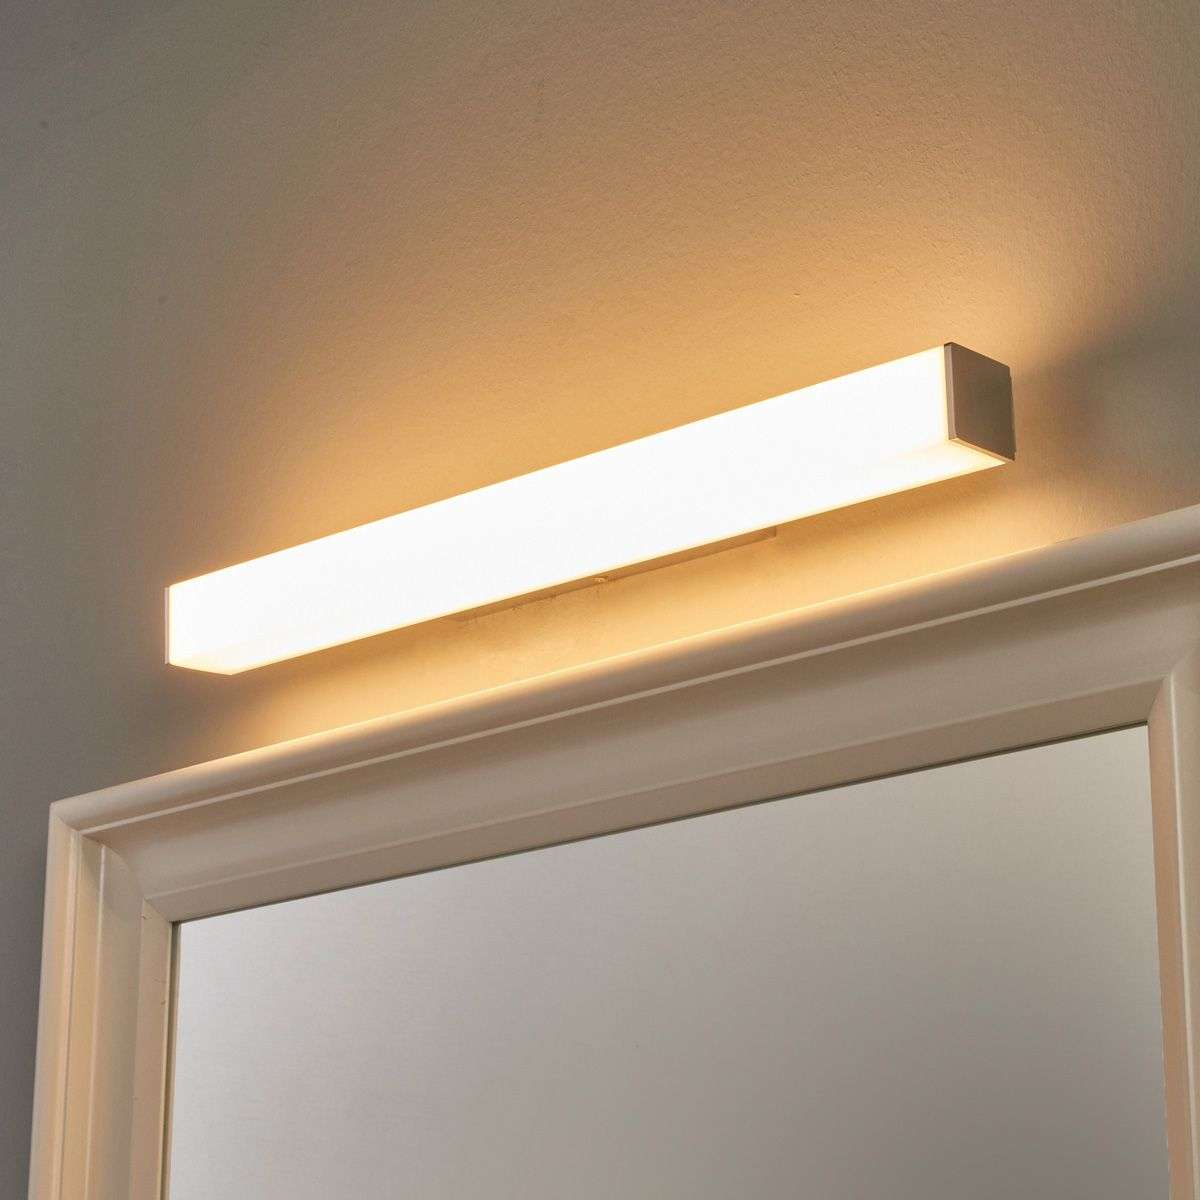 Led Bathroom Wall Lights Uk: Angular LED Bathroom Wall Lamp Lenn